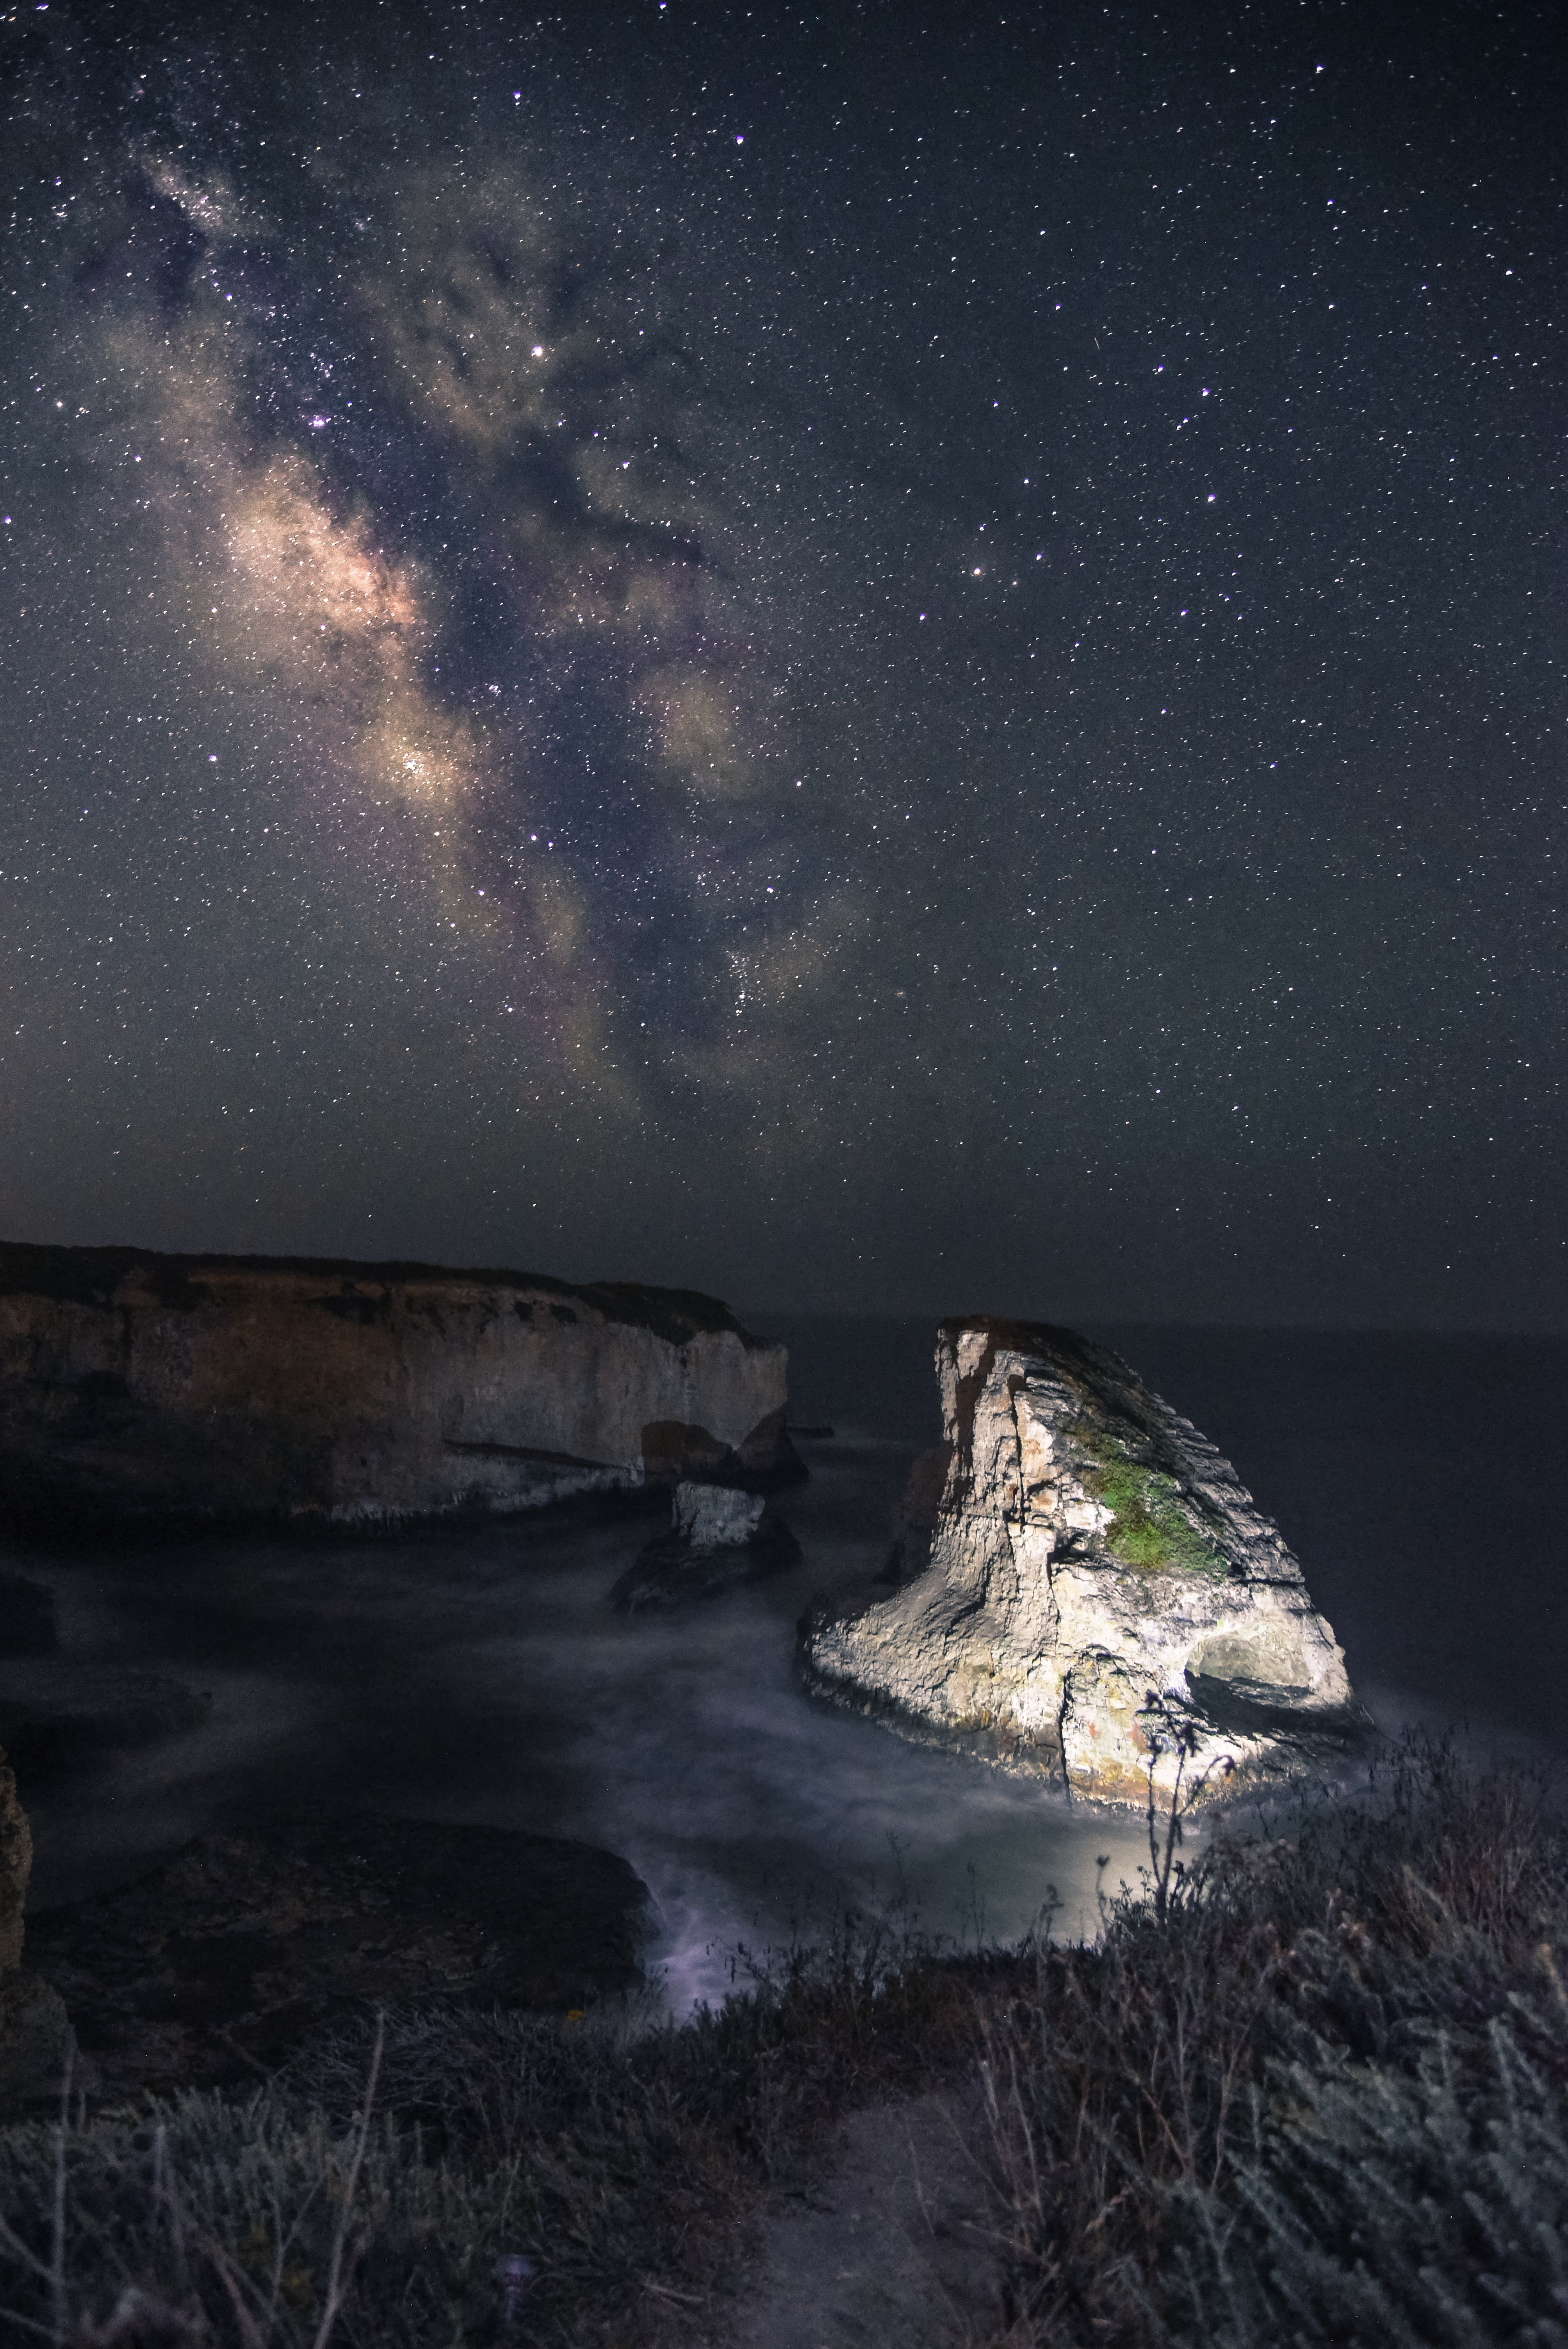 The Milky Way rises above the lighted up Shark Fin Cove in the star-studded night.